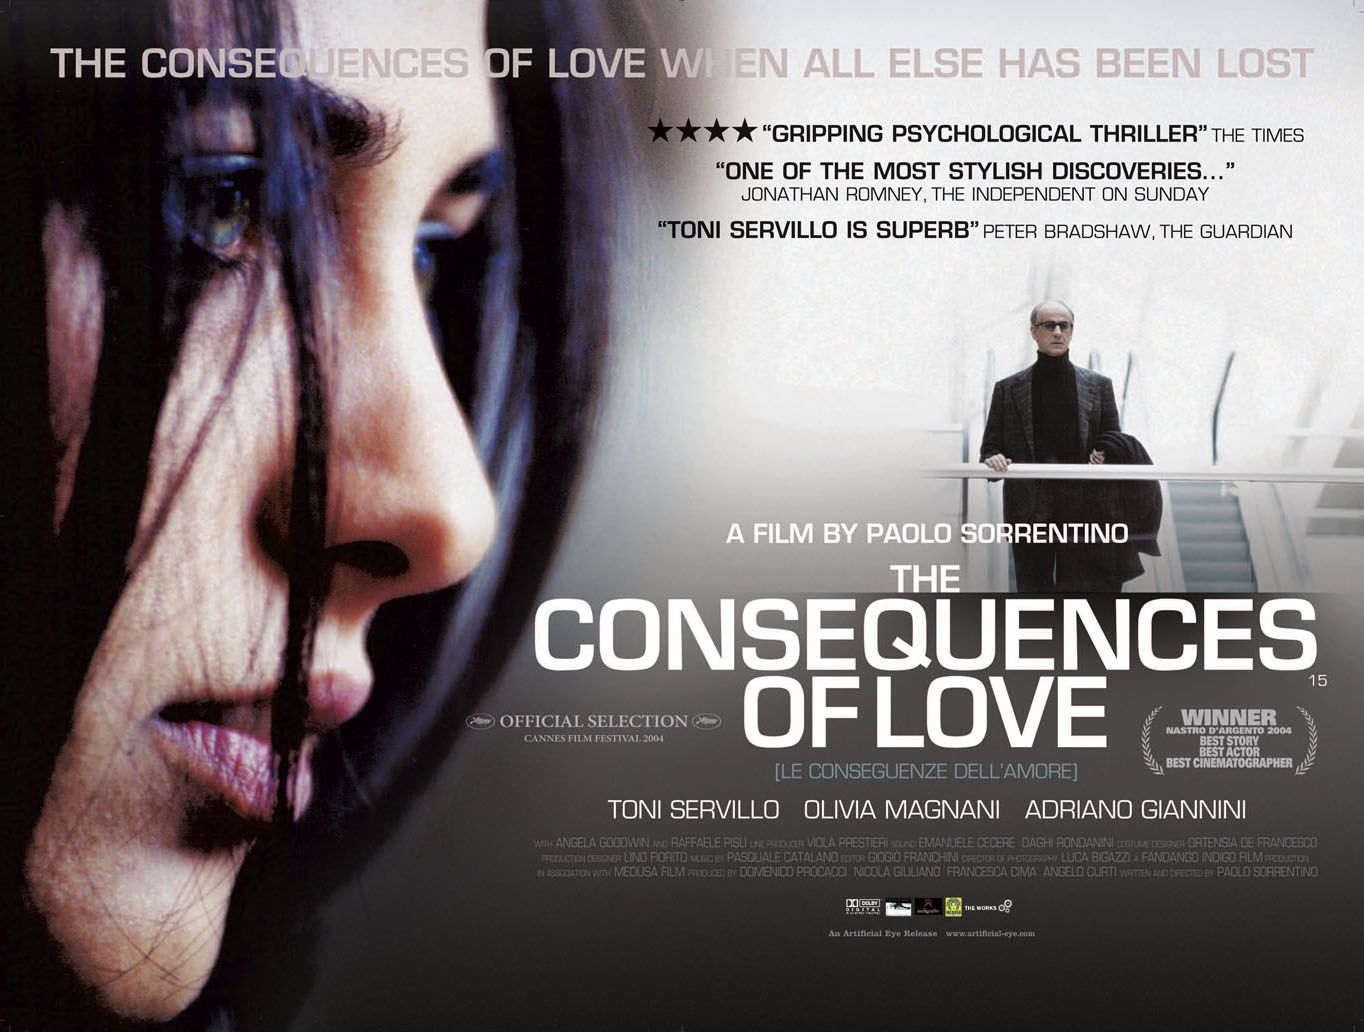 Are there any consequences of love 14